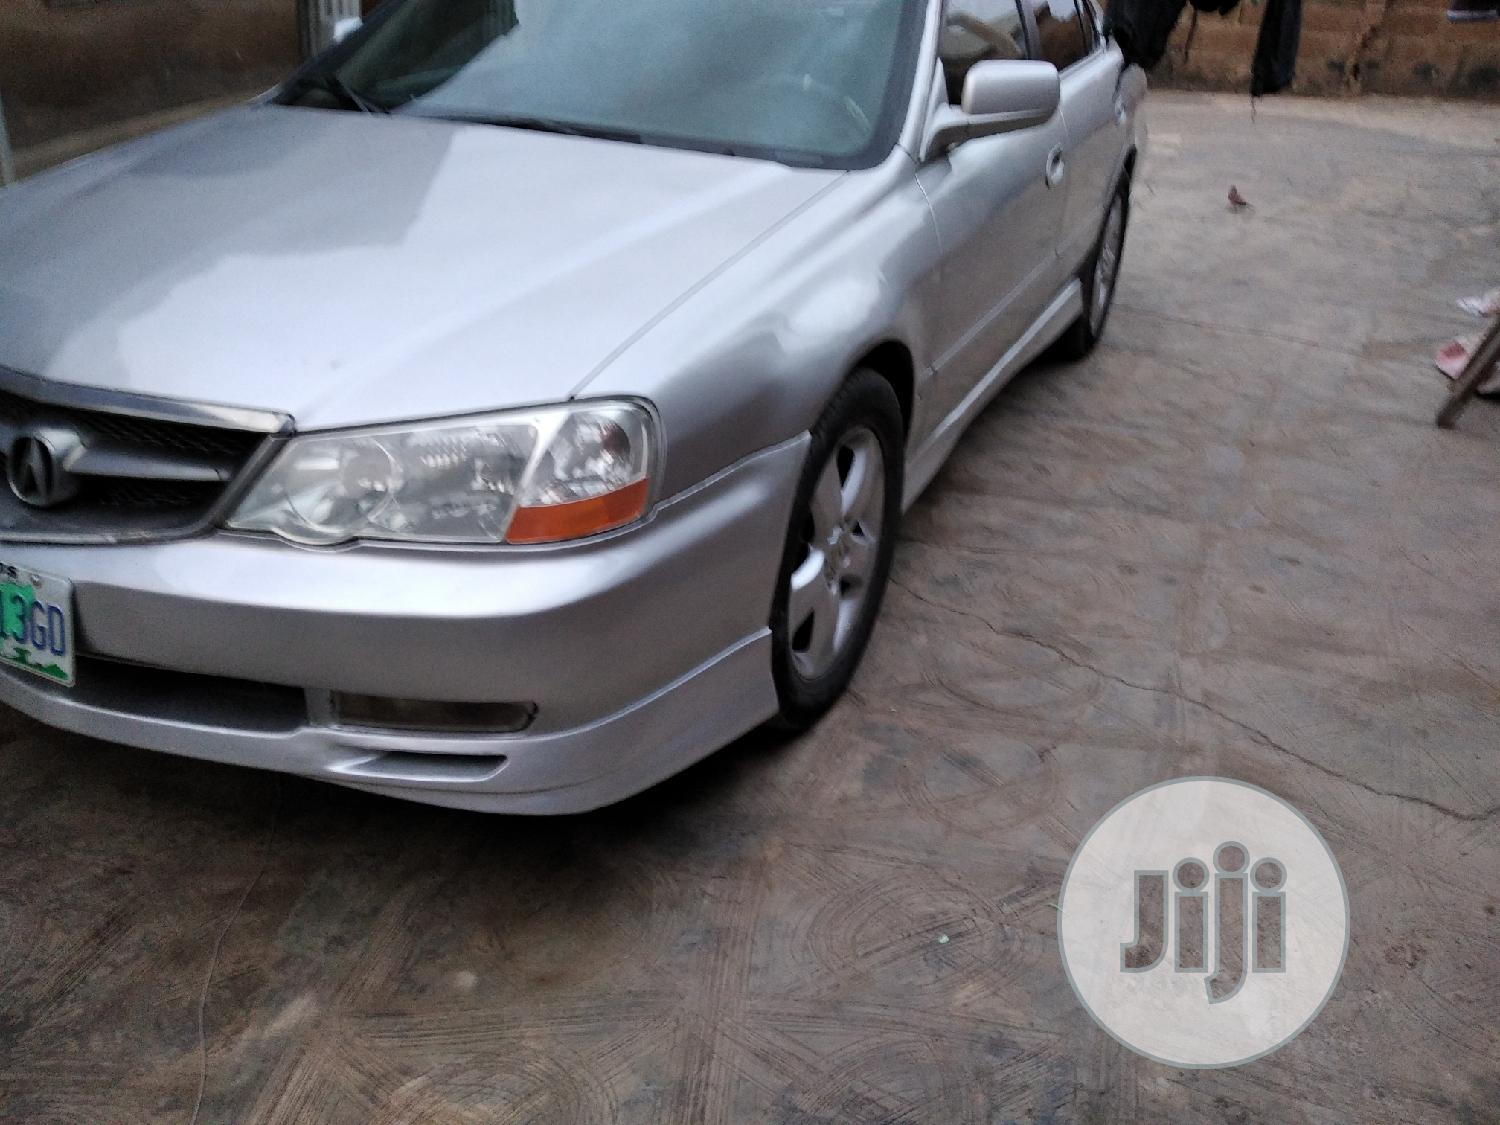 Acura Tl 2003 3 2 Type S Silver In Osogbo Cars Md Bk Jiji Ng For Sale In Osogbo Buy Cars From Md Bk On Jiji Ng